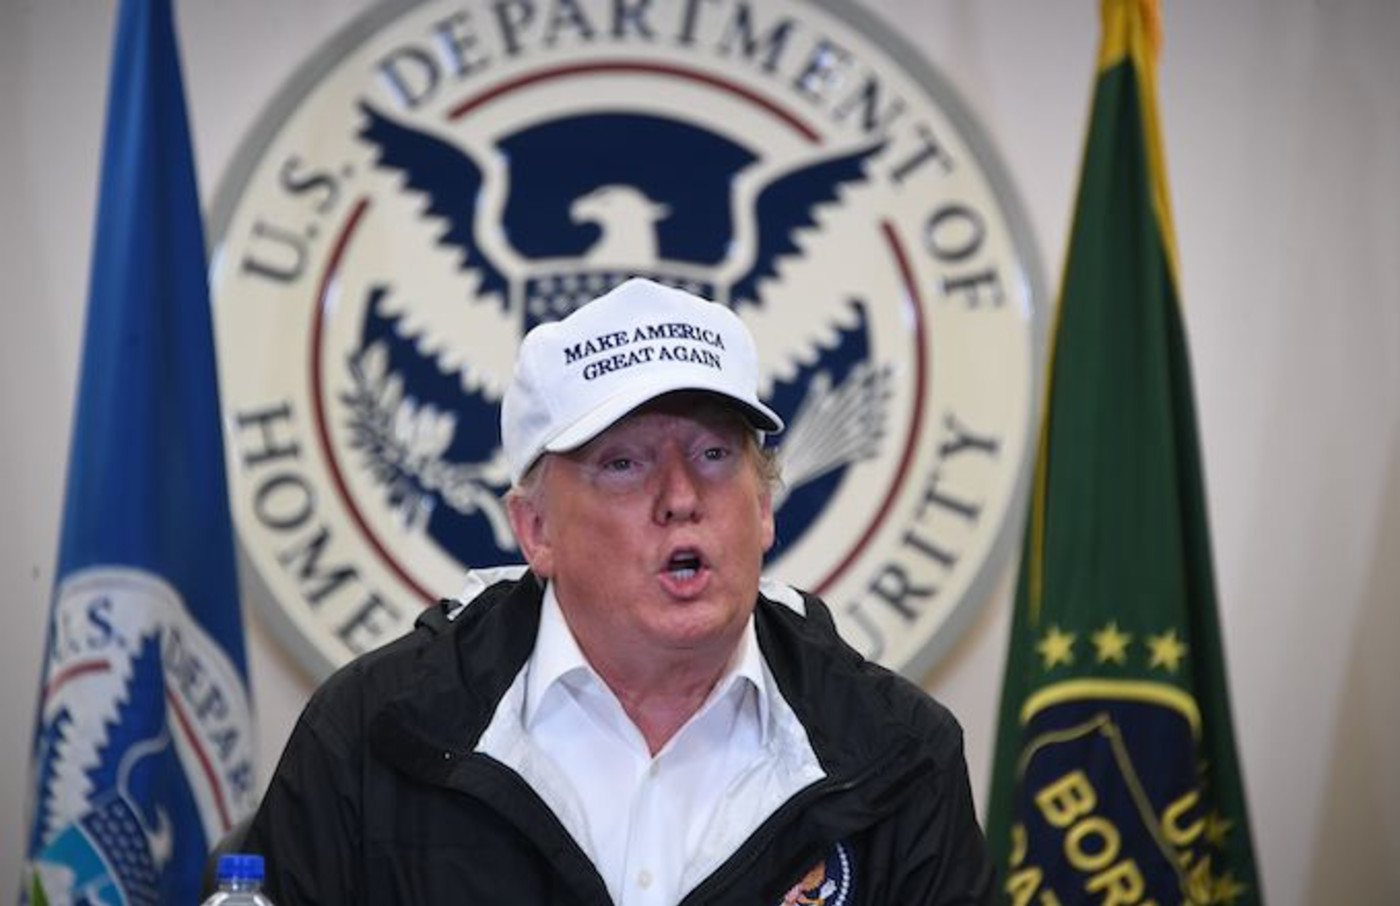 Trump travels to the US-Mexico border as part of his all-out offensive .